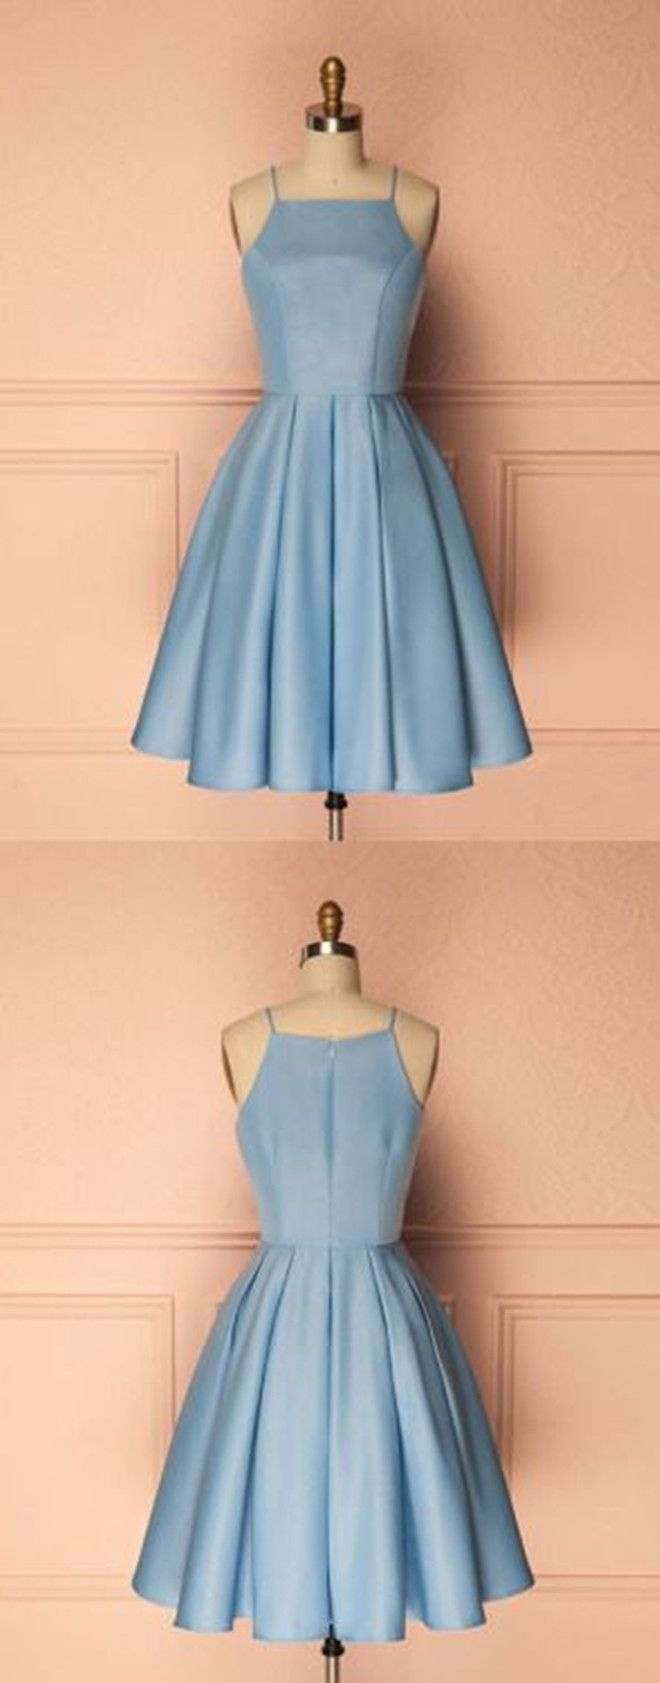 short homecoming dresses,light blue homecoming dresses,simple homecoming dresses,graduation dresses @simpledress2480